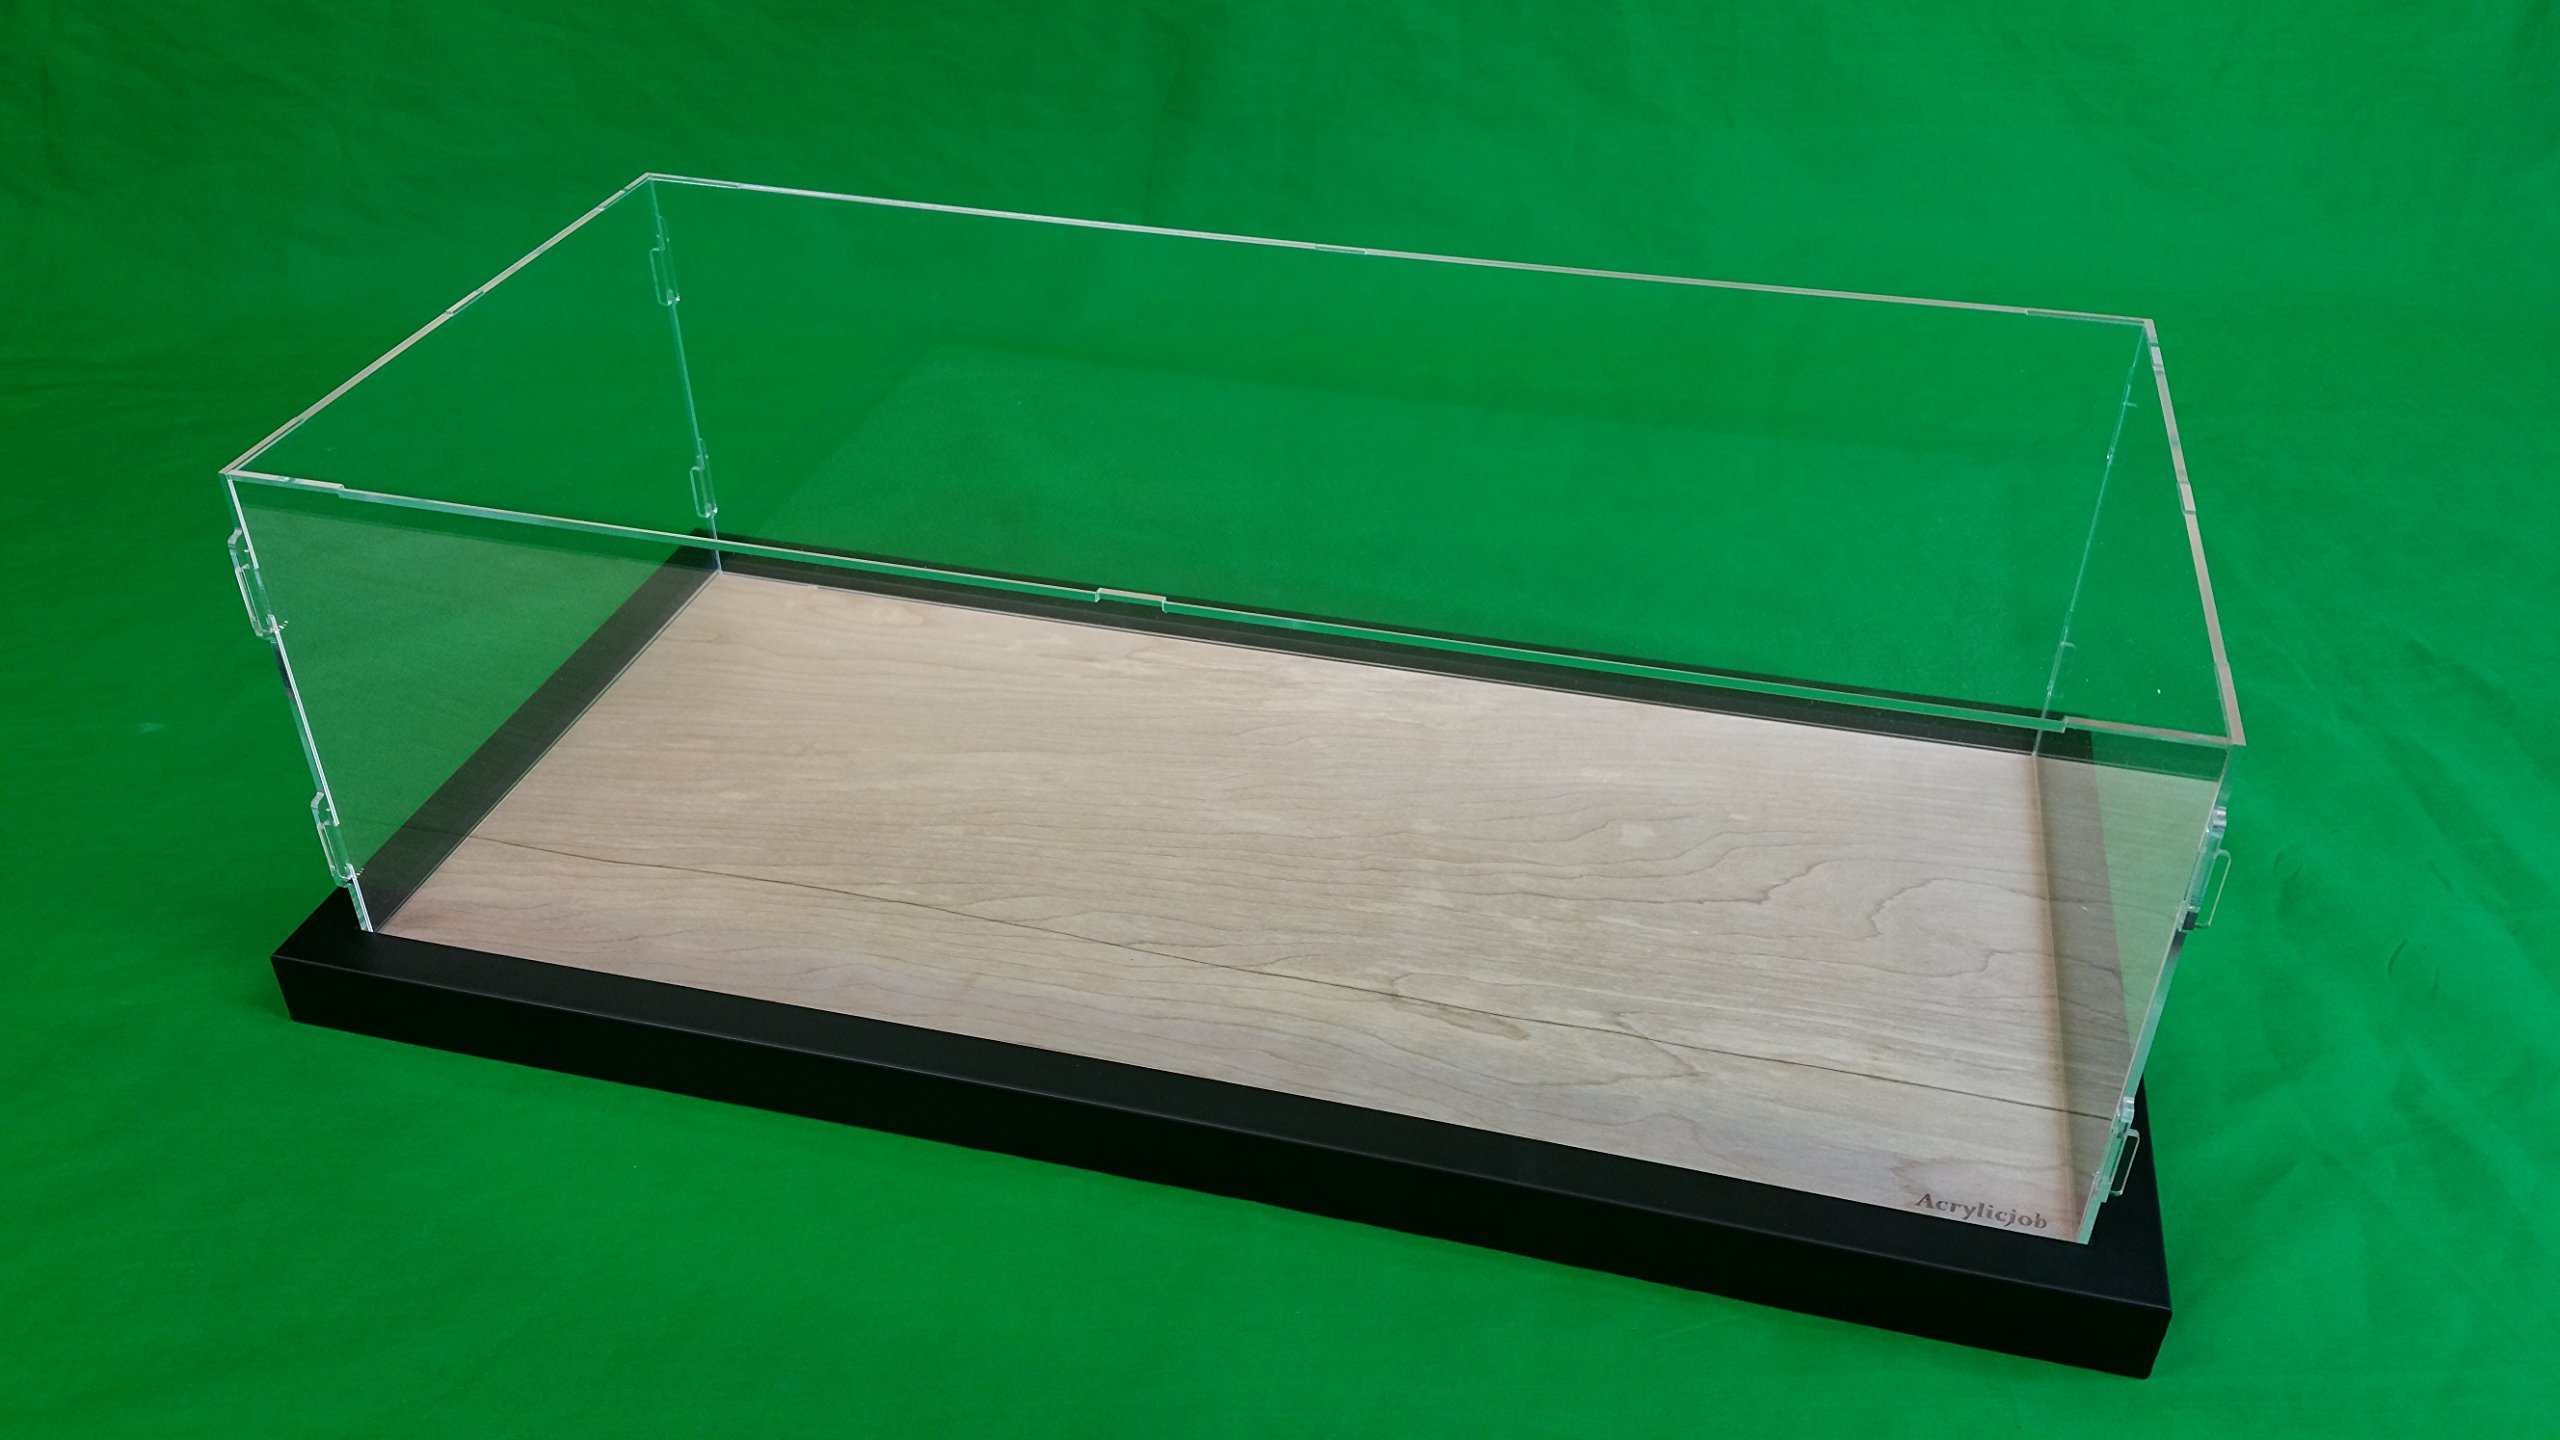 25''L x 12''W x 7''H Acrylic Display Case for 1:8 scale Pocher Testarossa and model cars Black Frame